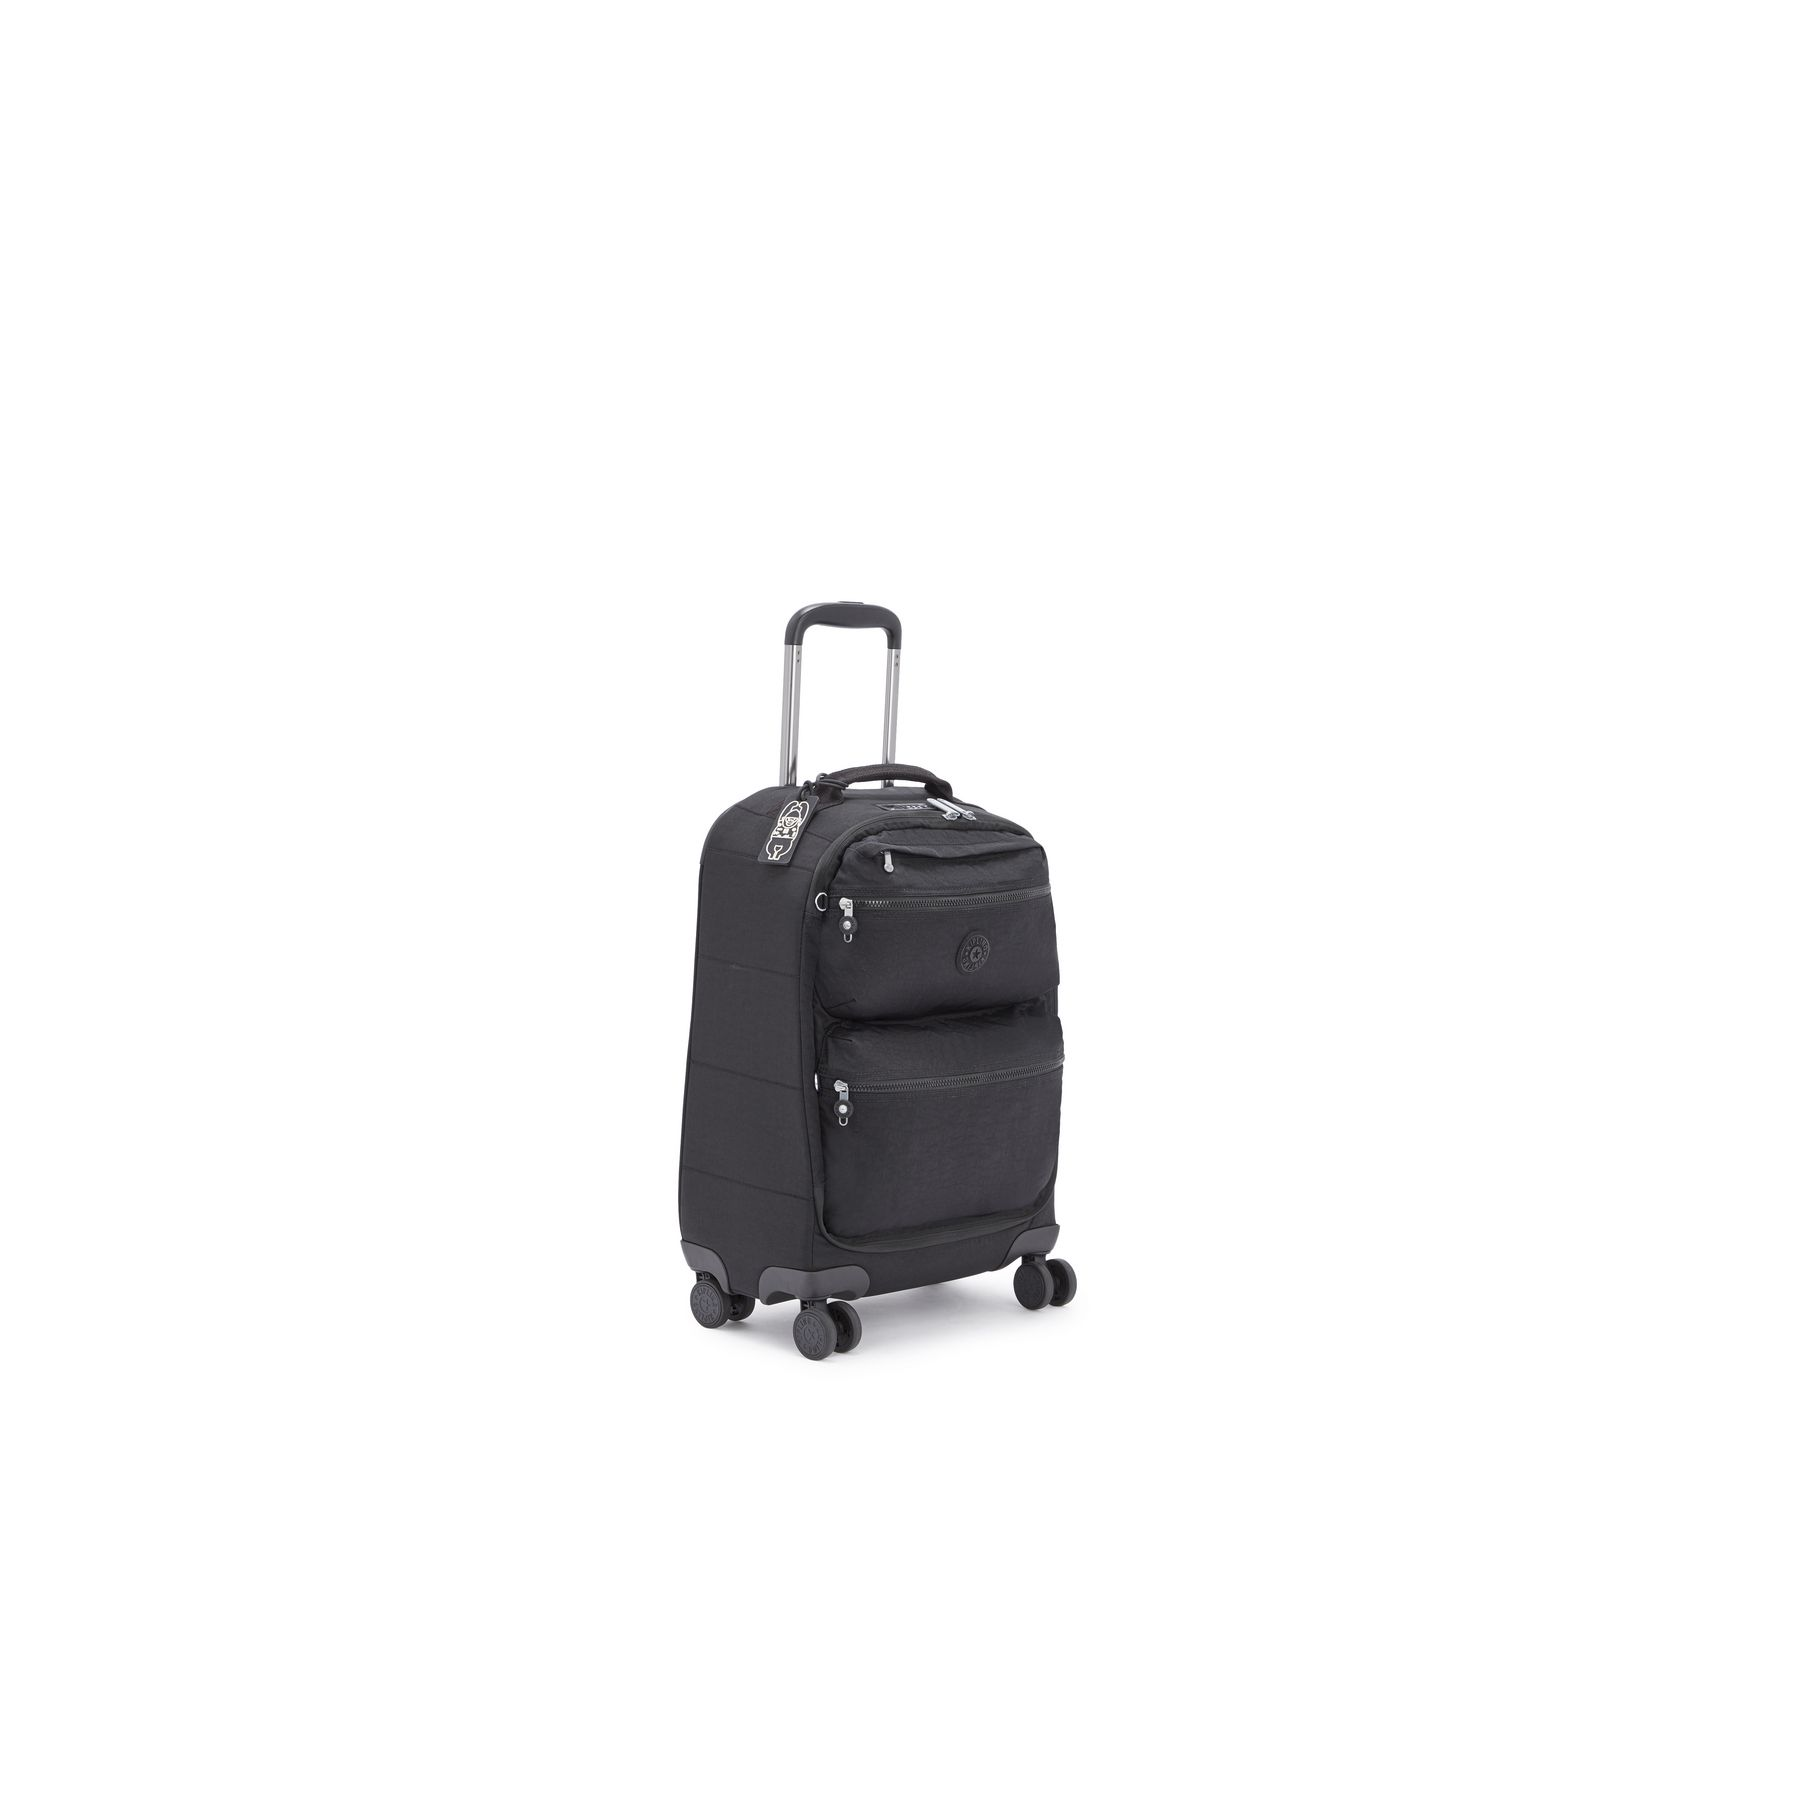 CITY SPINNER S LUGGAGE by Kipling